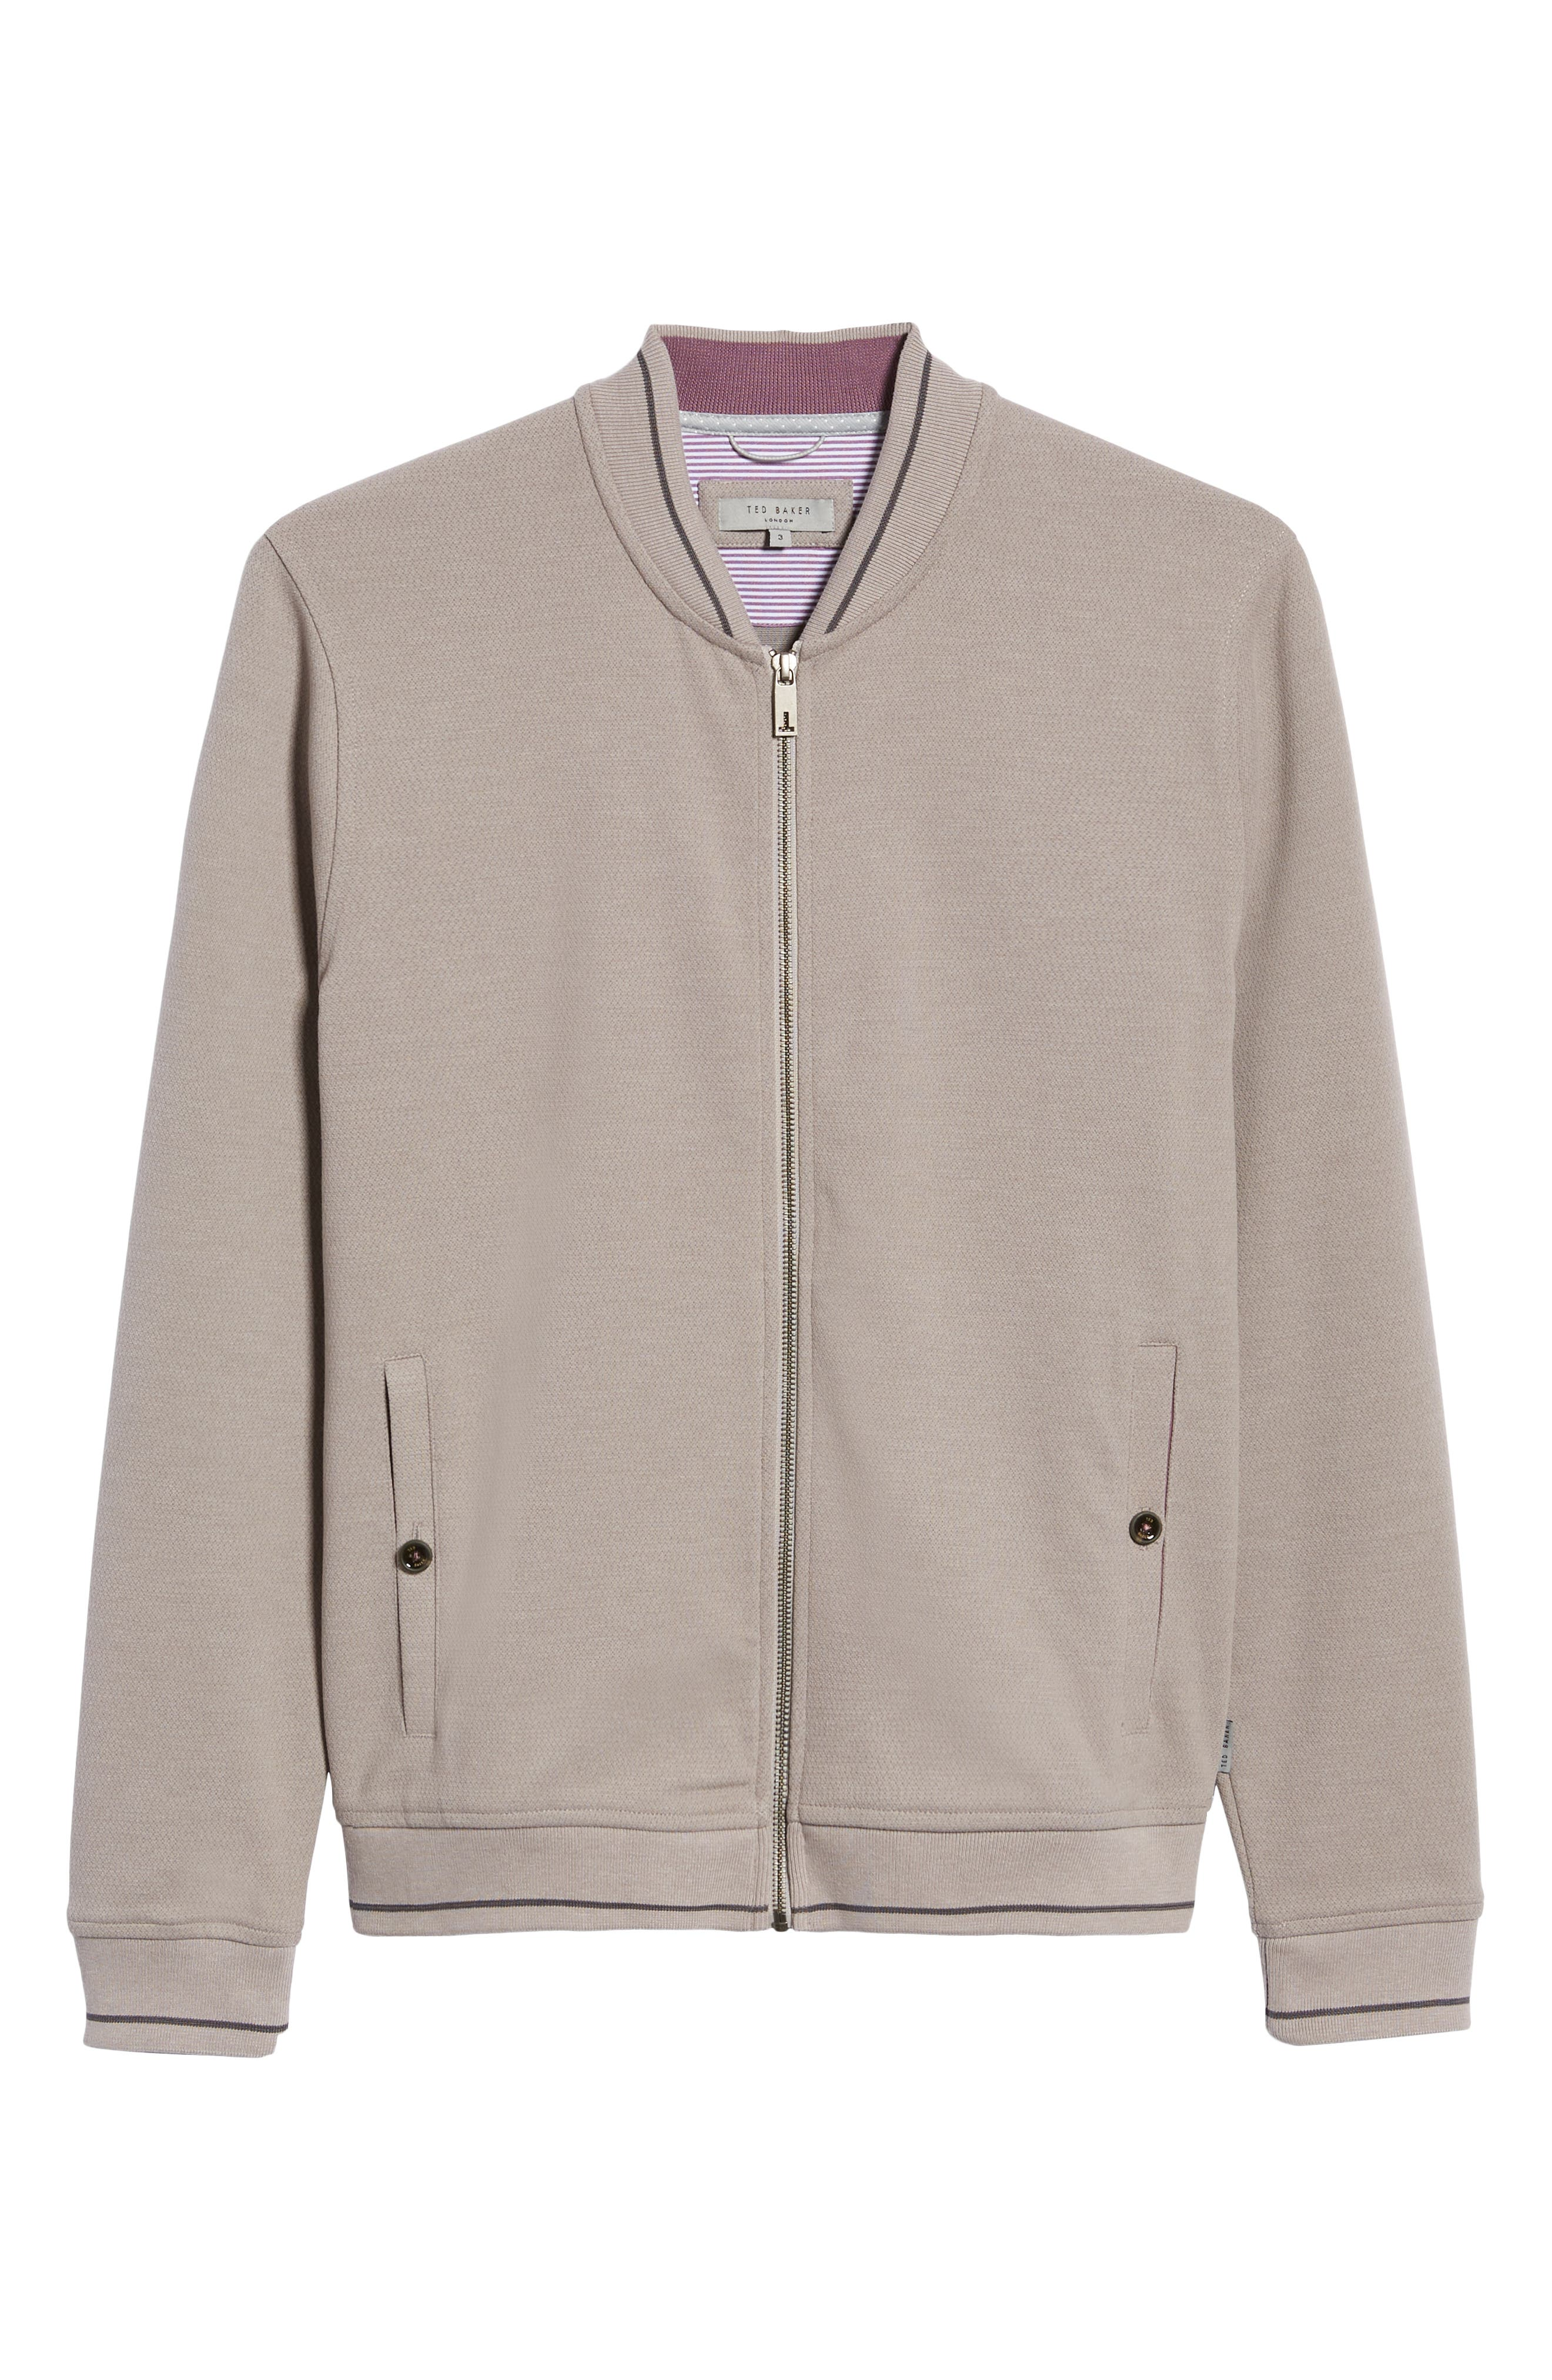 Chicpea Jersey Bomber Jacket,                             Alternate thumbnail 6, color,                             250